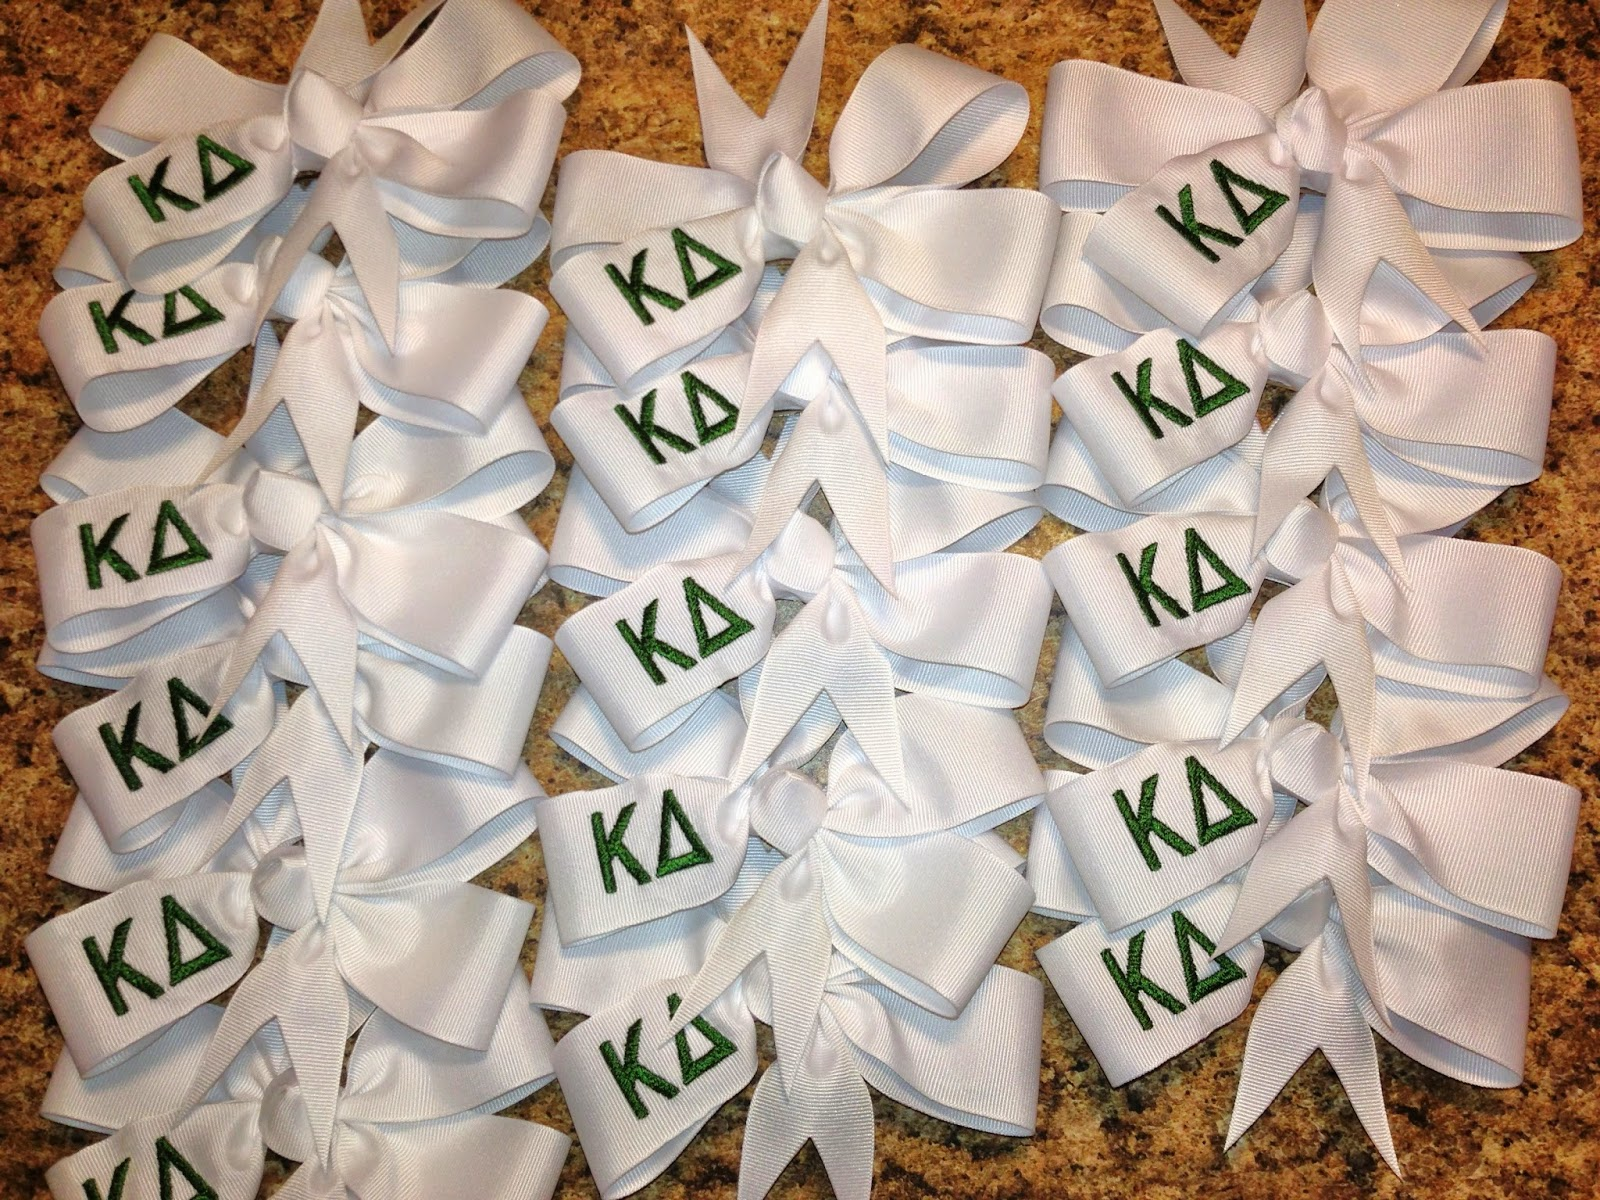 Kappa Delta Sorority Bows